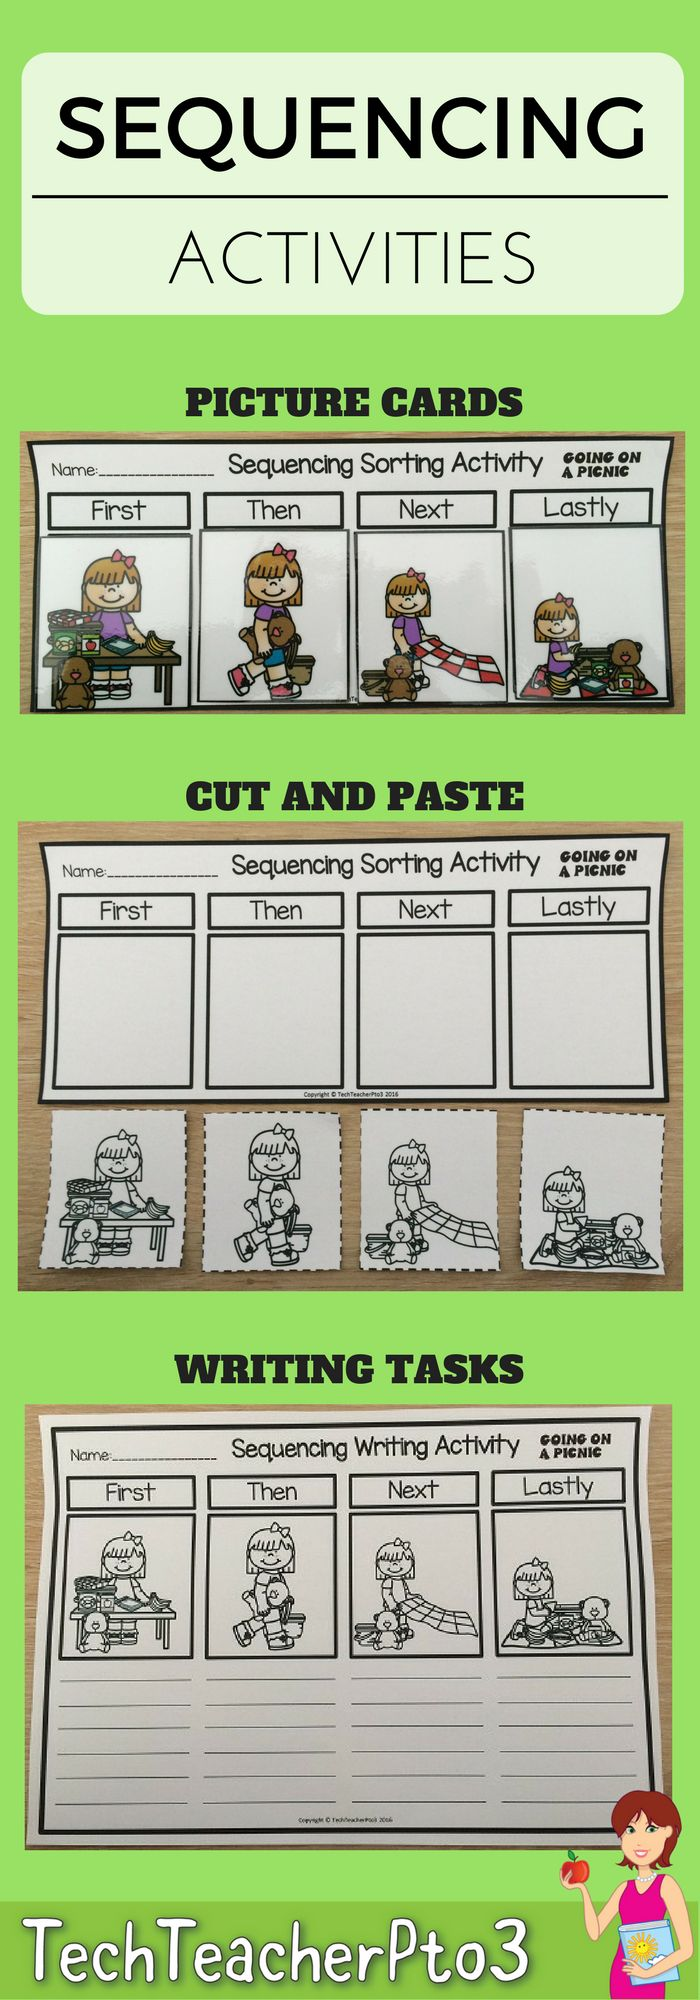 Learning to sequence familiar objects and events is a foundation skill for mathematics and a writing strategy for narratives. In this pack you will find 3 useful activities for practicing sequencing. These activities work wonderfully in math rotations or literacy centers.